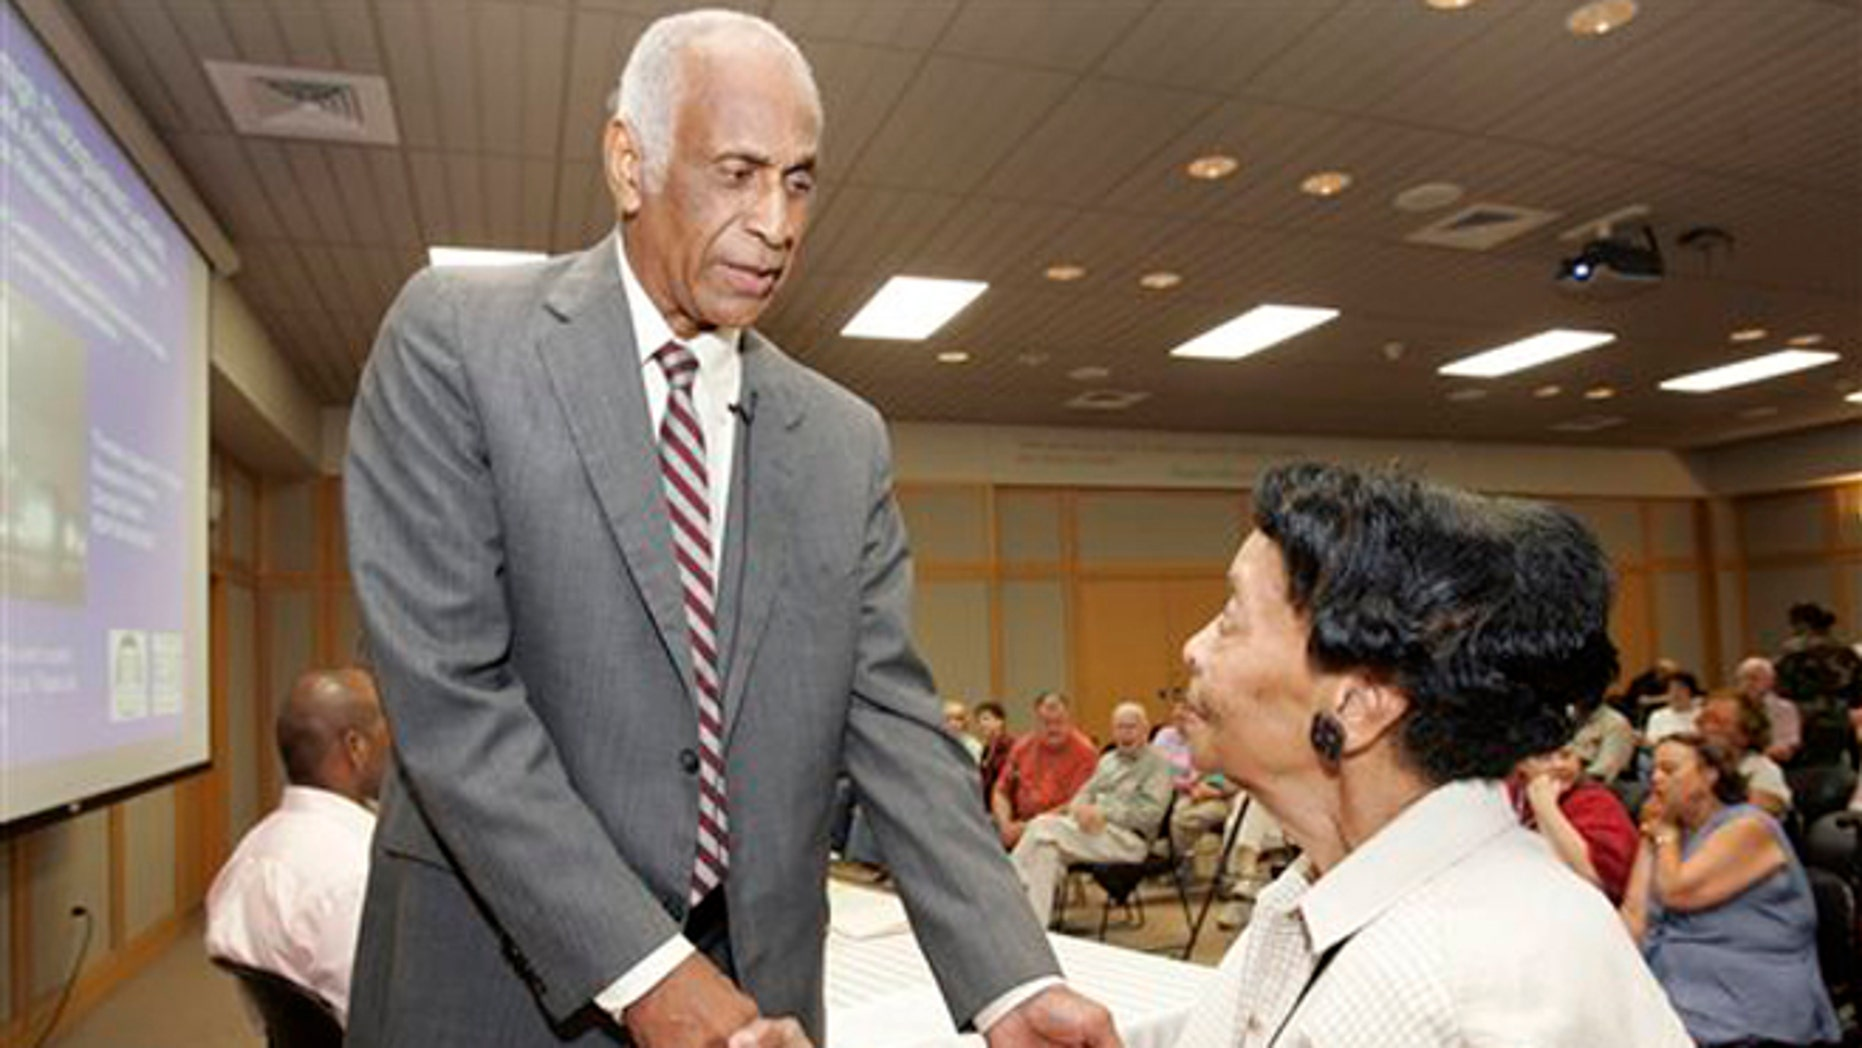 Aug. 1, 2007: In this photo, Milton Crenchaw, who was a member of the first all-black unit in the Army Air Corps during World War II known as the Tuskegee Airmen, left, speaks with Thessia Dunn before participating in a lecture series at the Butler Center for Arkansas Studies in Little Rock, Ark.